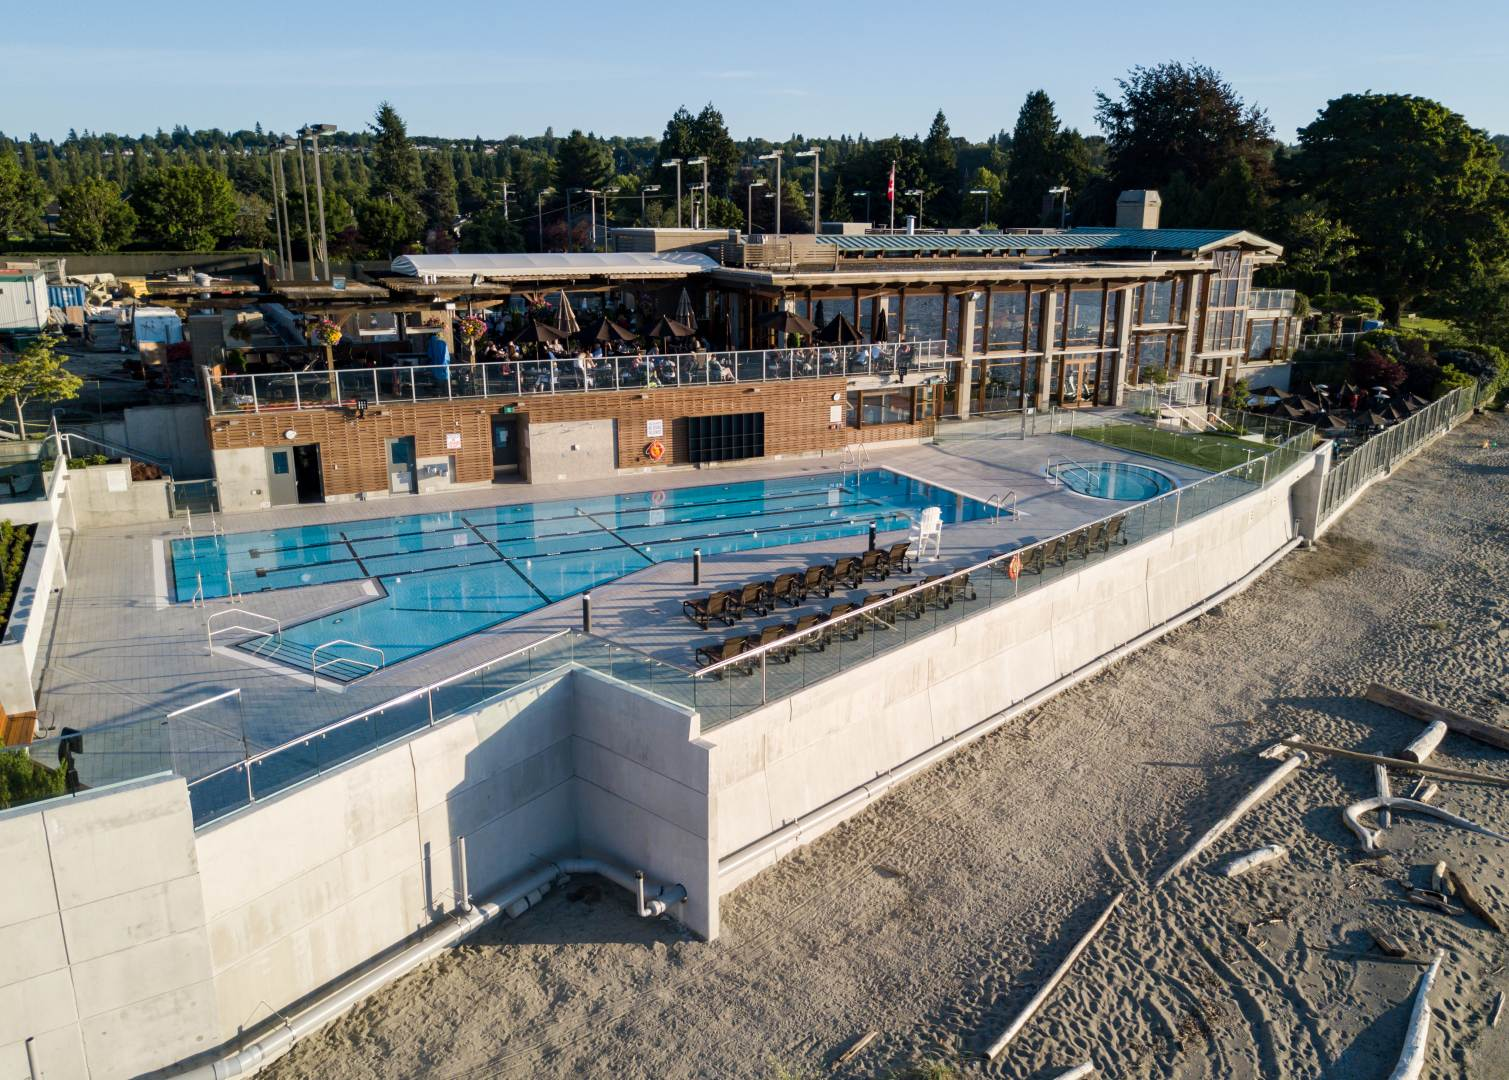 Jericho Tennis Club Pool Renovation